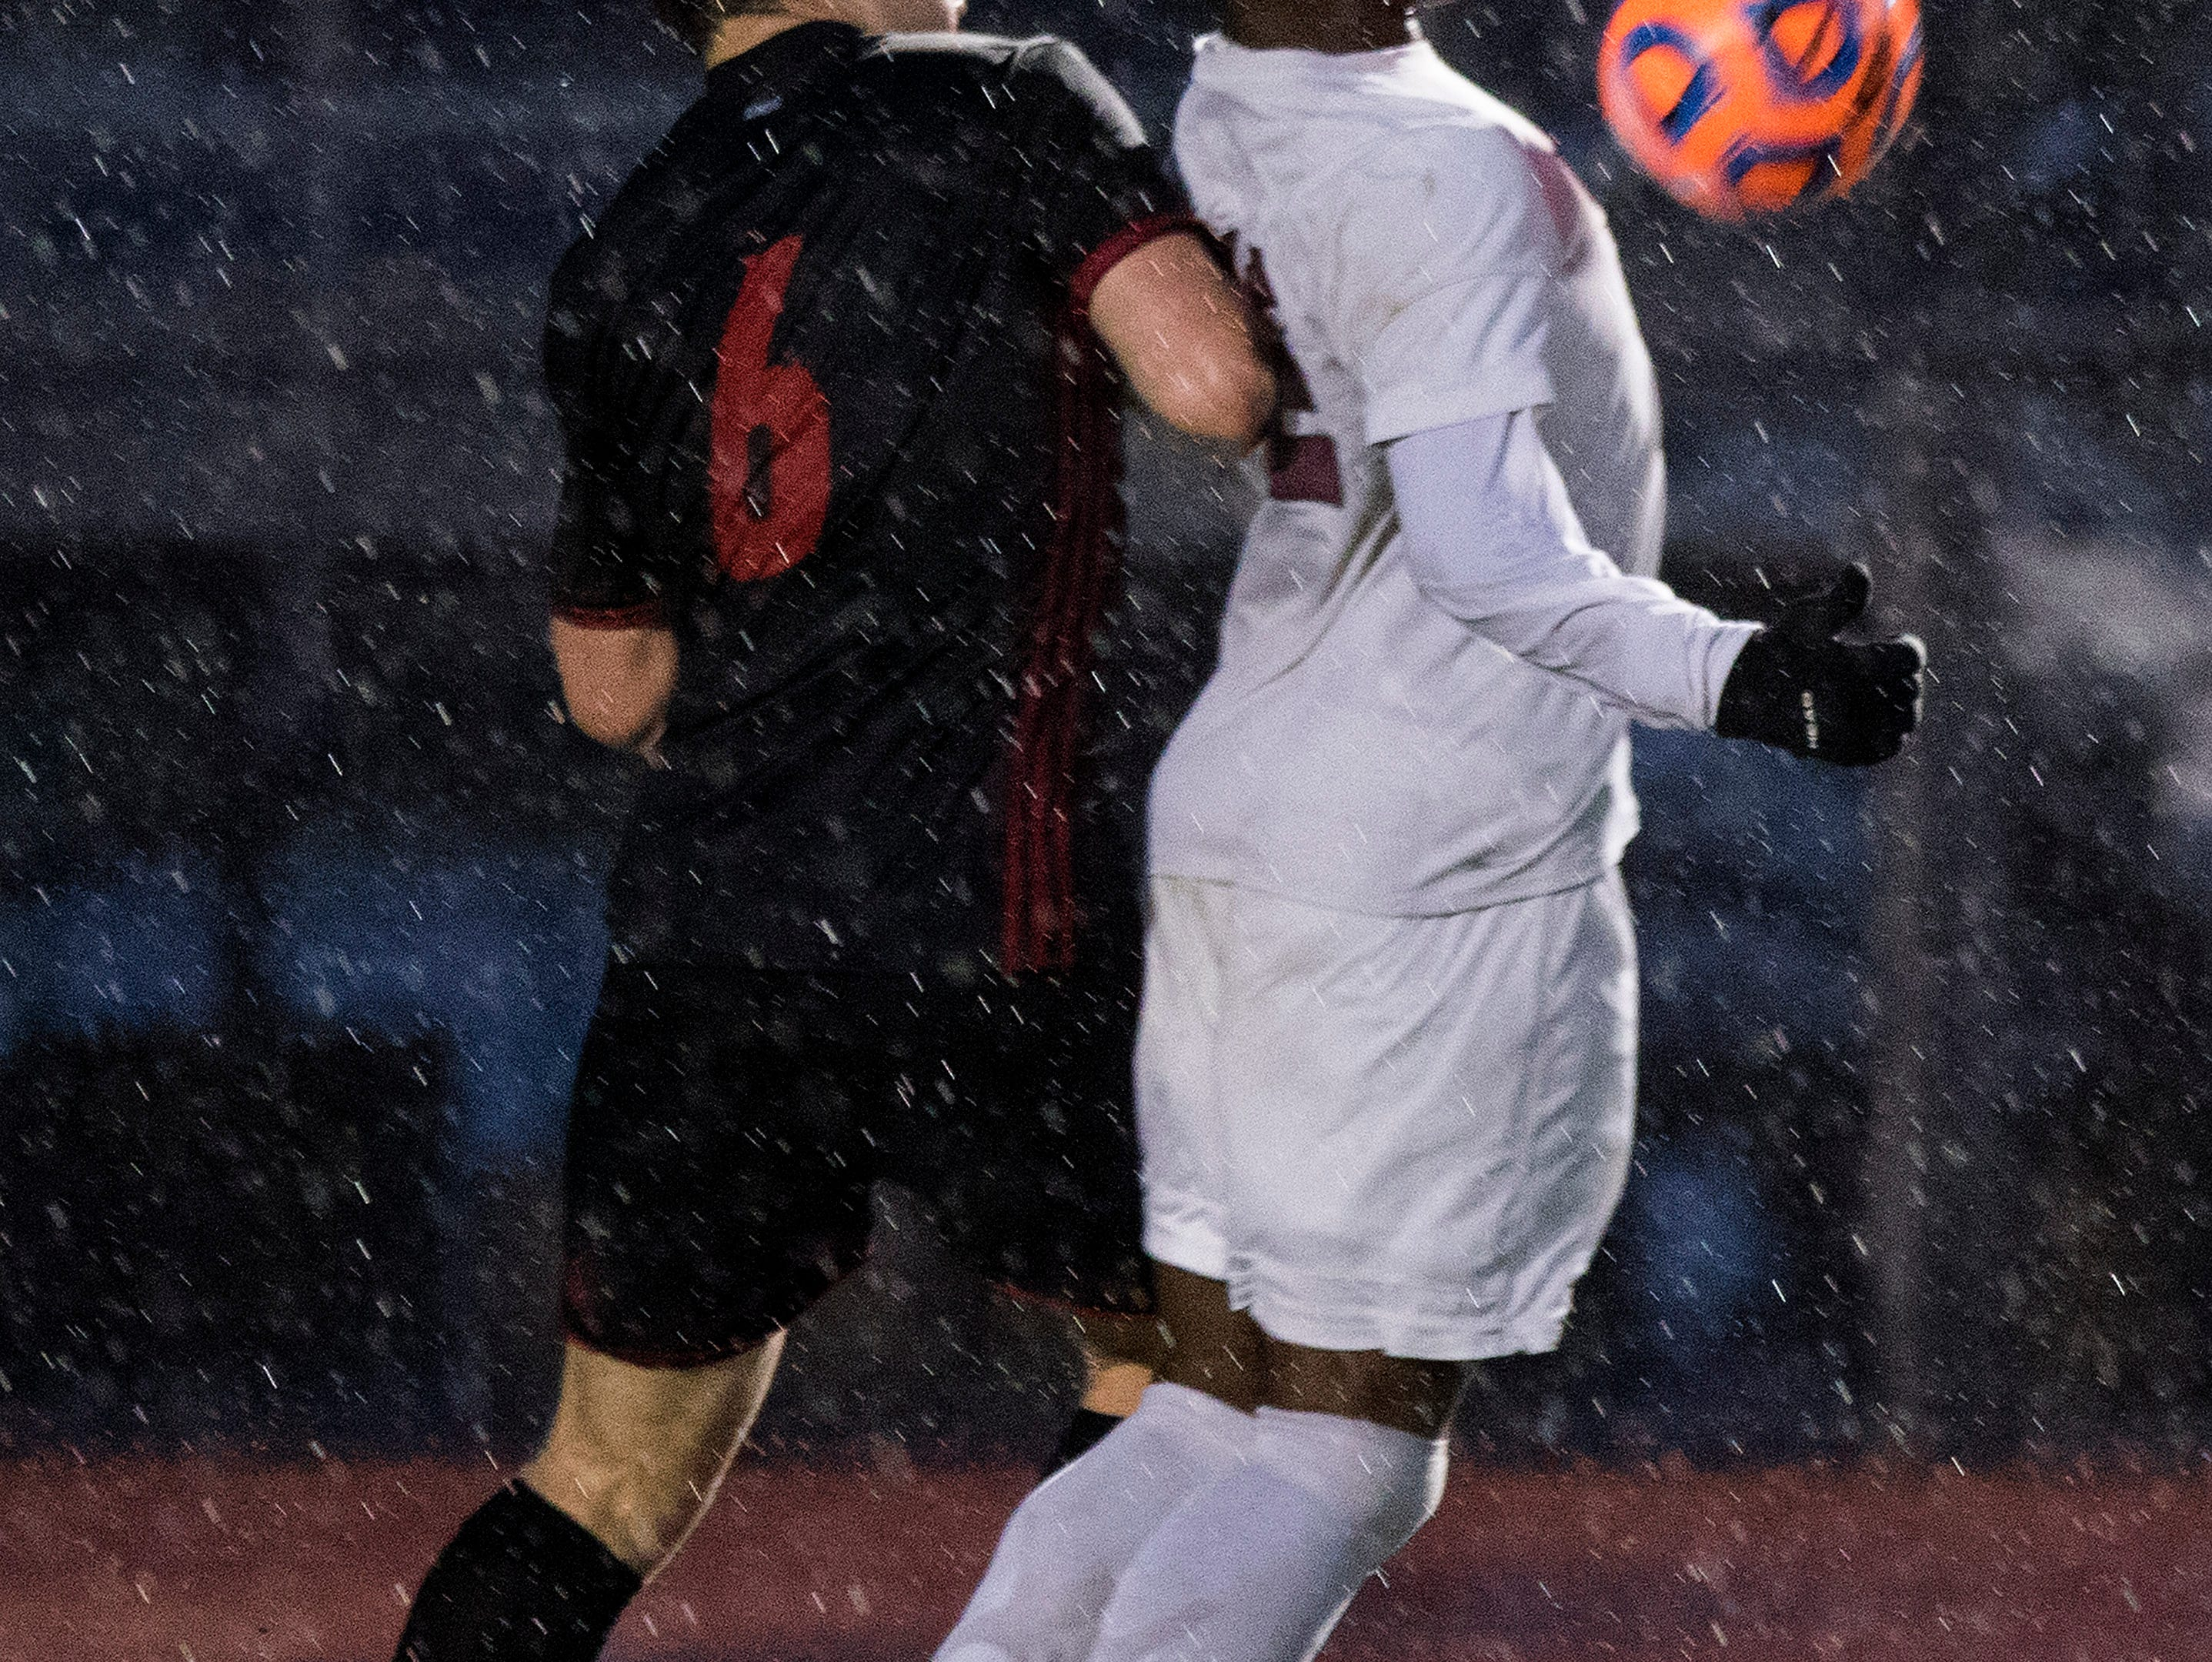 Hamilton's Channing Chasten (12) gets shoved from behind by Brophy's Juan Alvarado (6) during in the 6A State Championship game in Gilbert, Thursday, Feb 21, 2019. Brophy won 3-0.